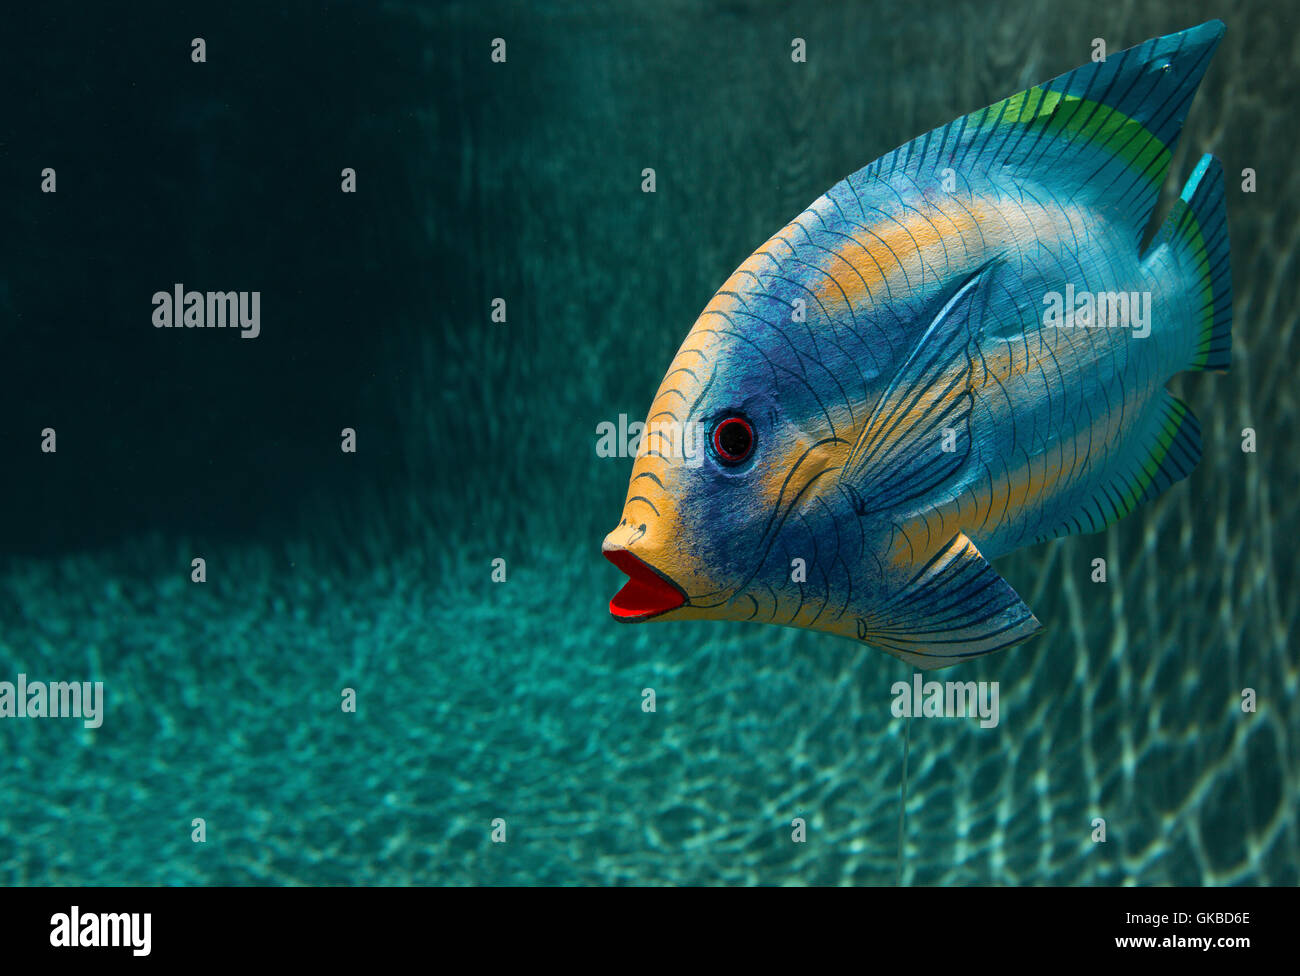 Poisson en bois dans une piscine à Virginia Beach, VA Photo Stock